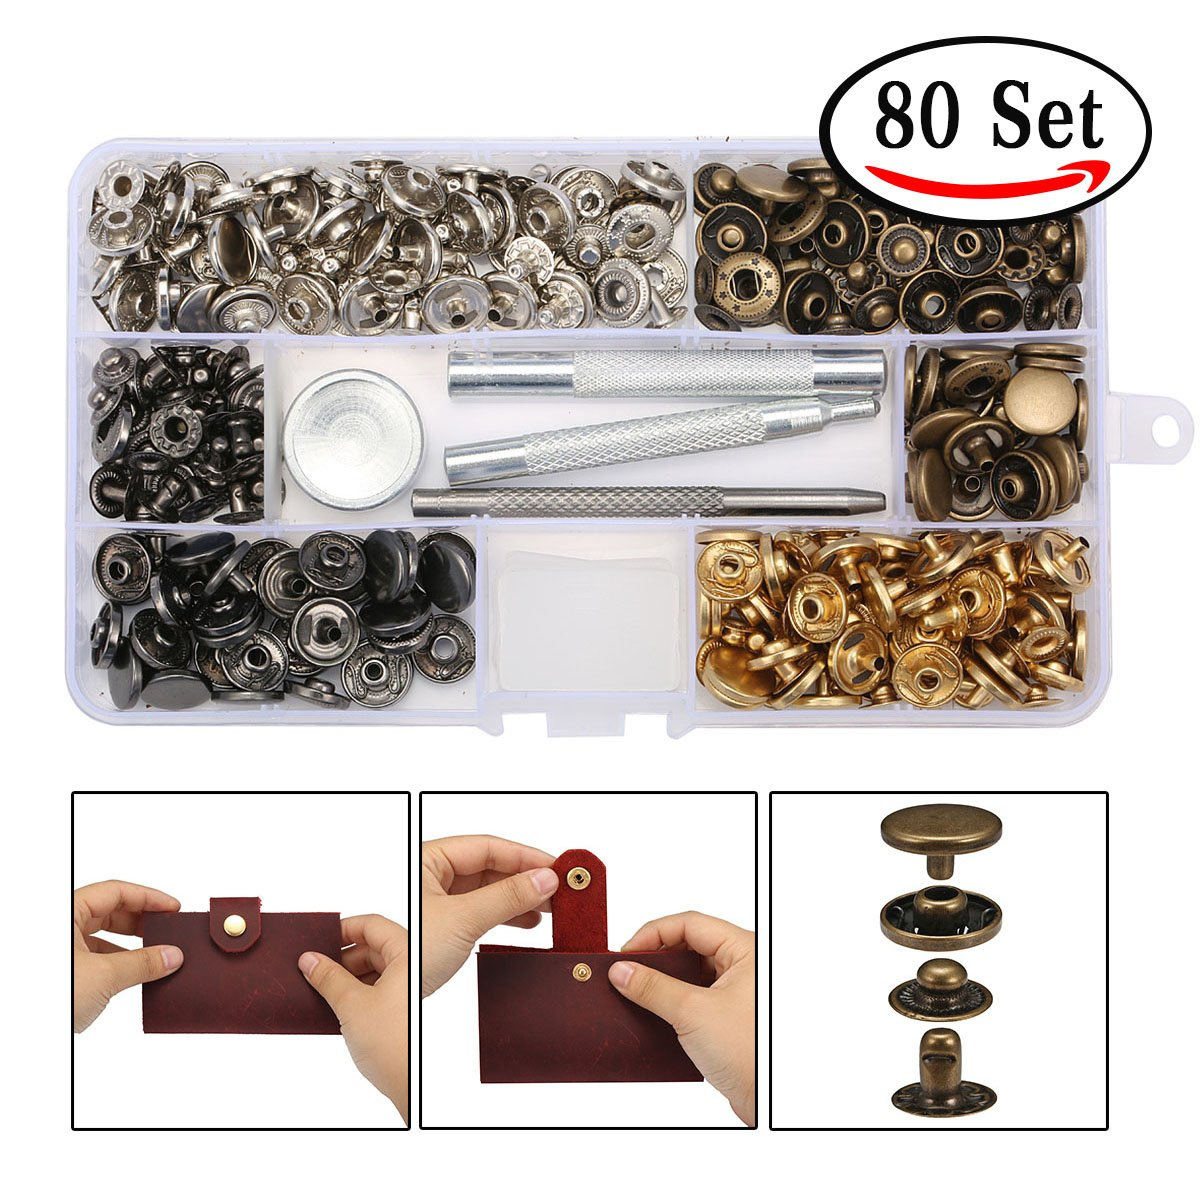 KingSo 80pcs 6/4mm leather Snap buttons,Leather decoration snap kit for leather Copper Snaps Fasteners Leather Button Press Studs with Fixing Tool Kit Rivet Gun (12.5 mm)